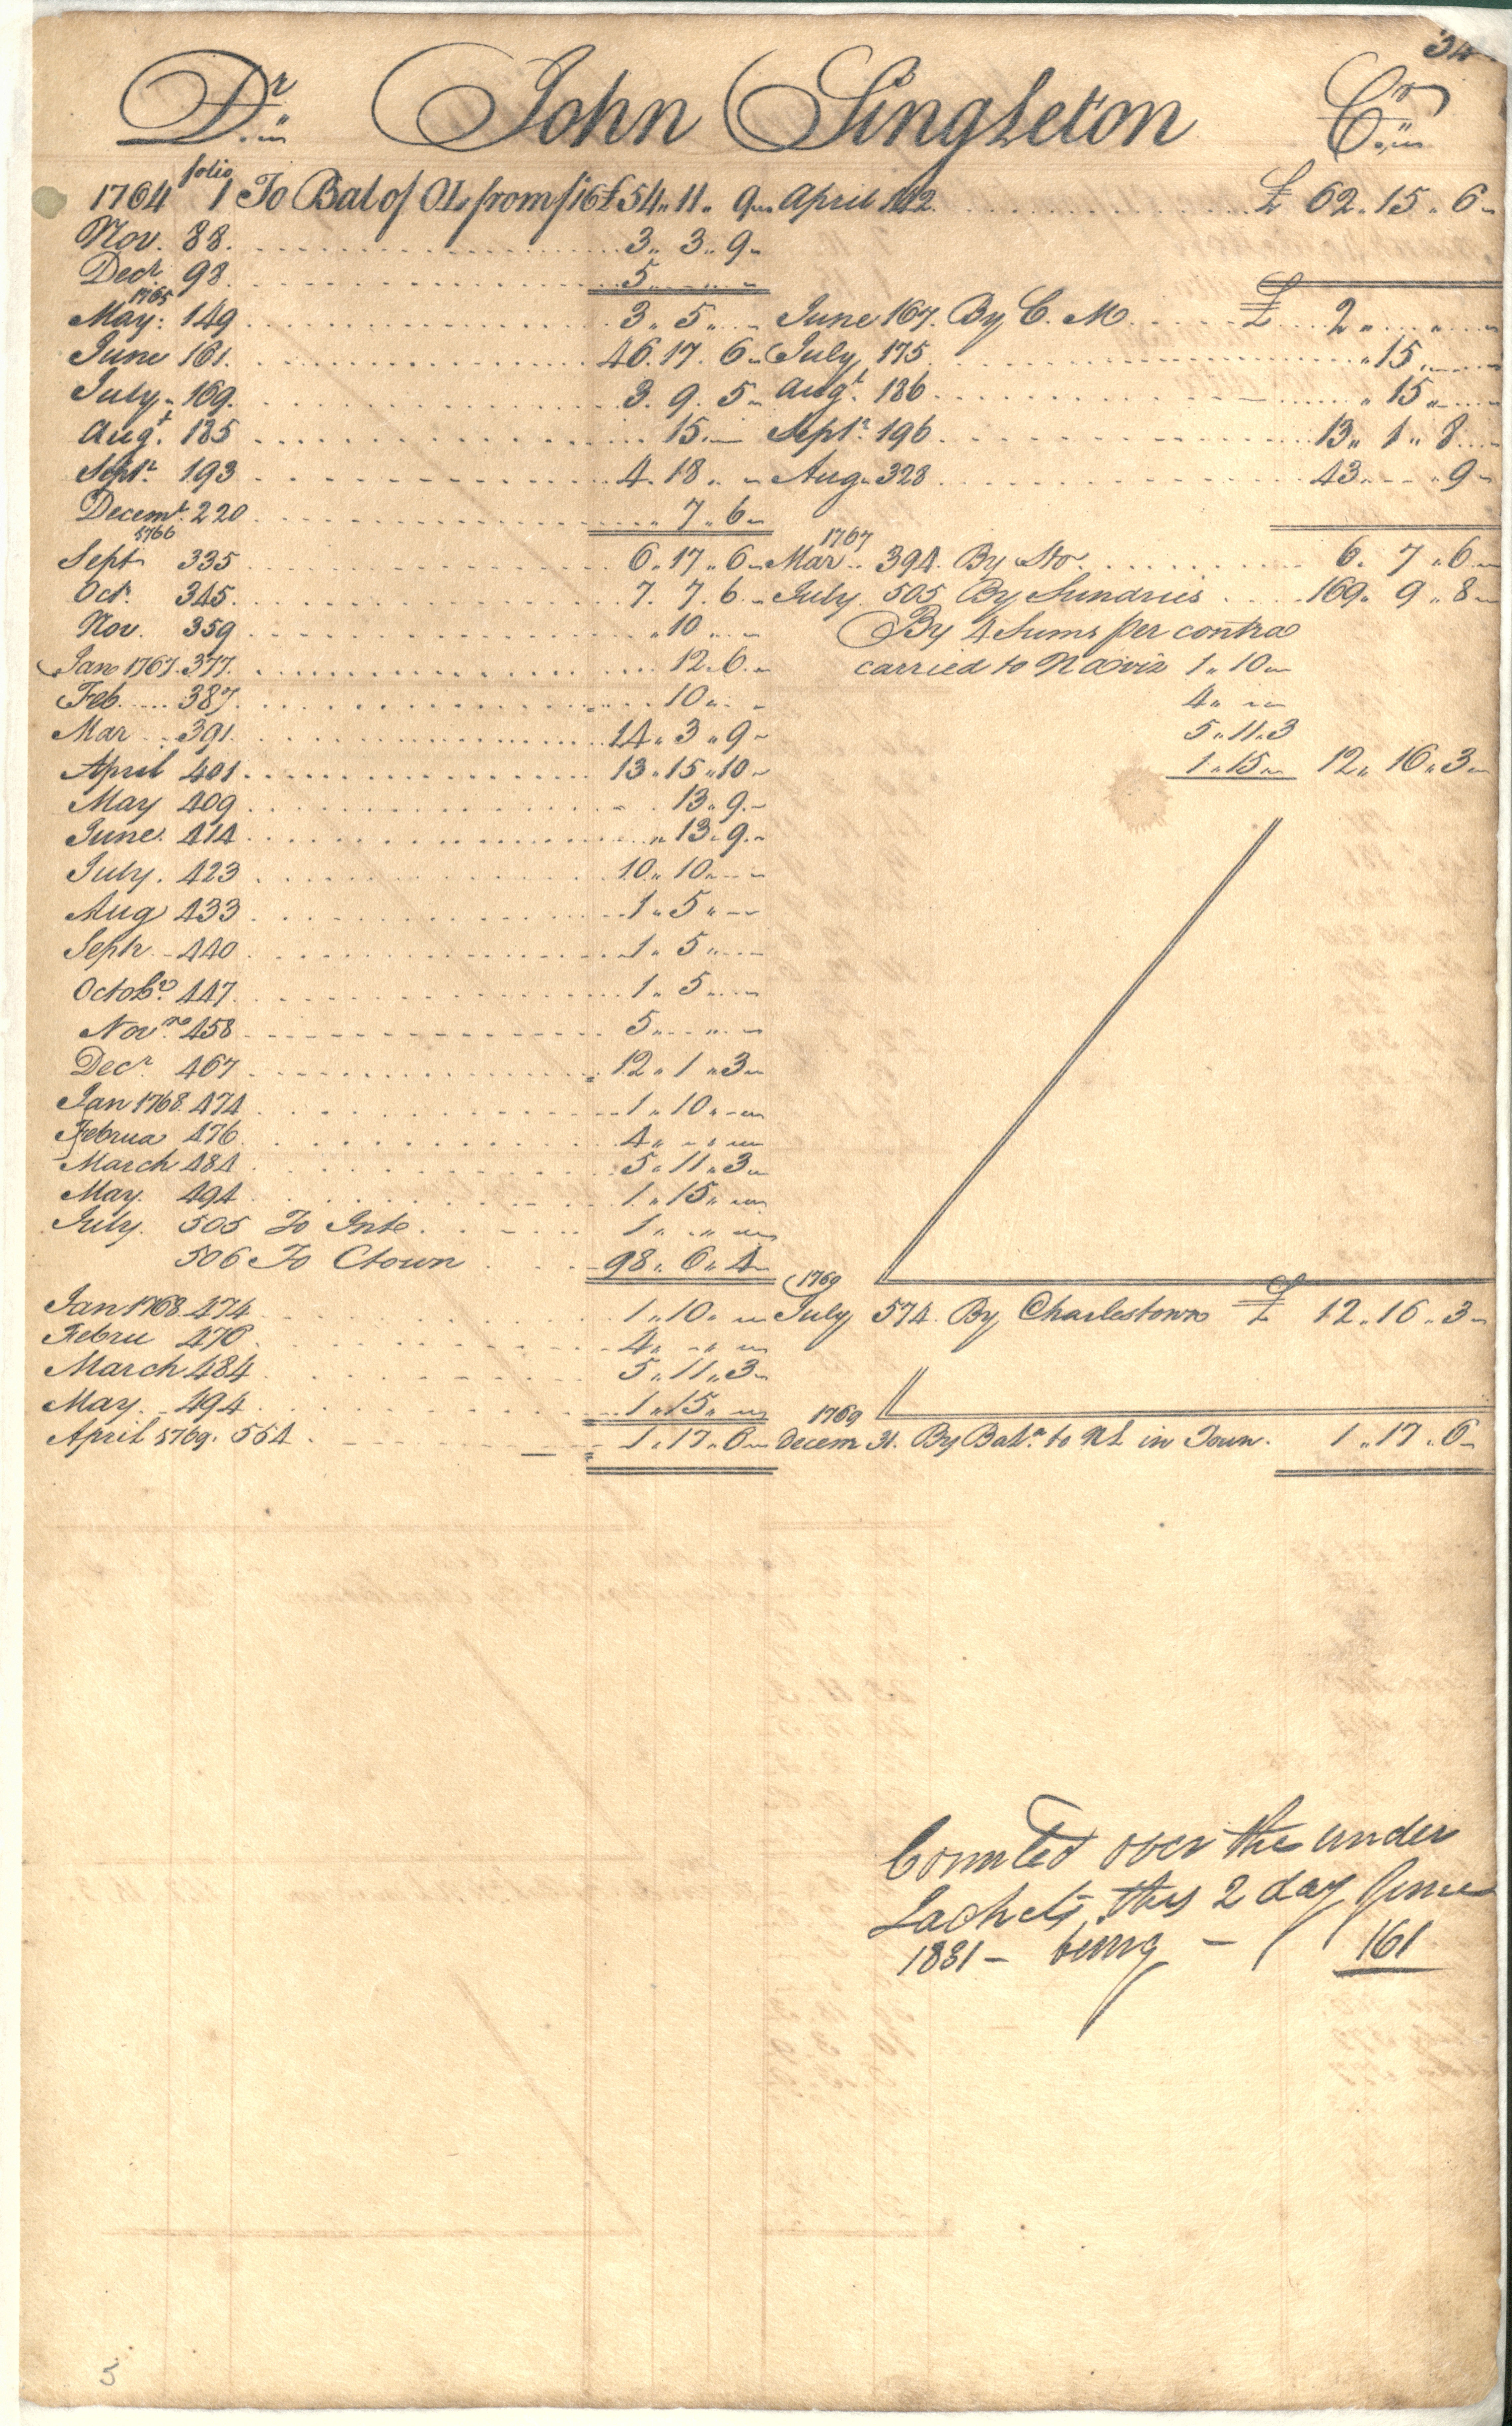 Plowden Weston's Business Ledger, page 34